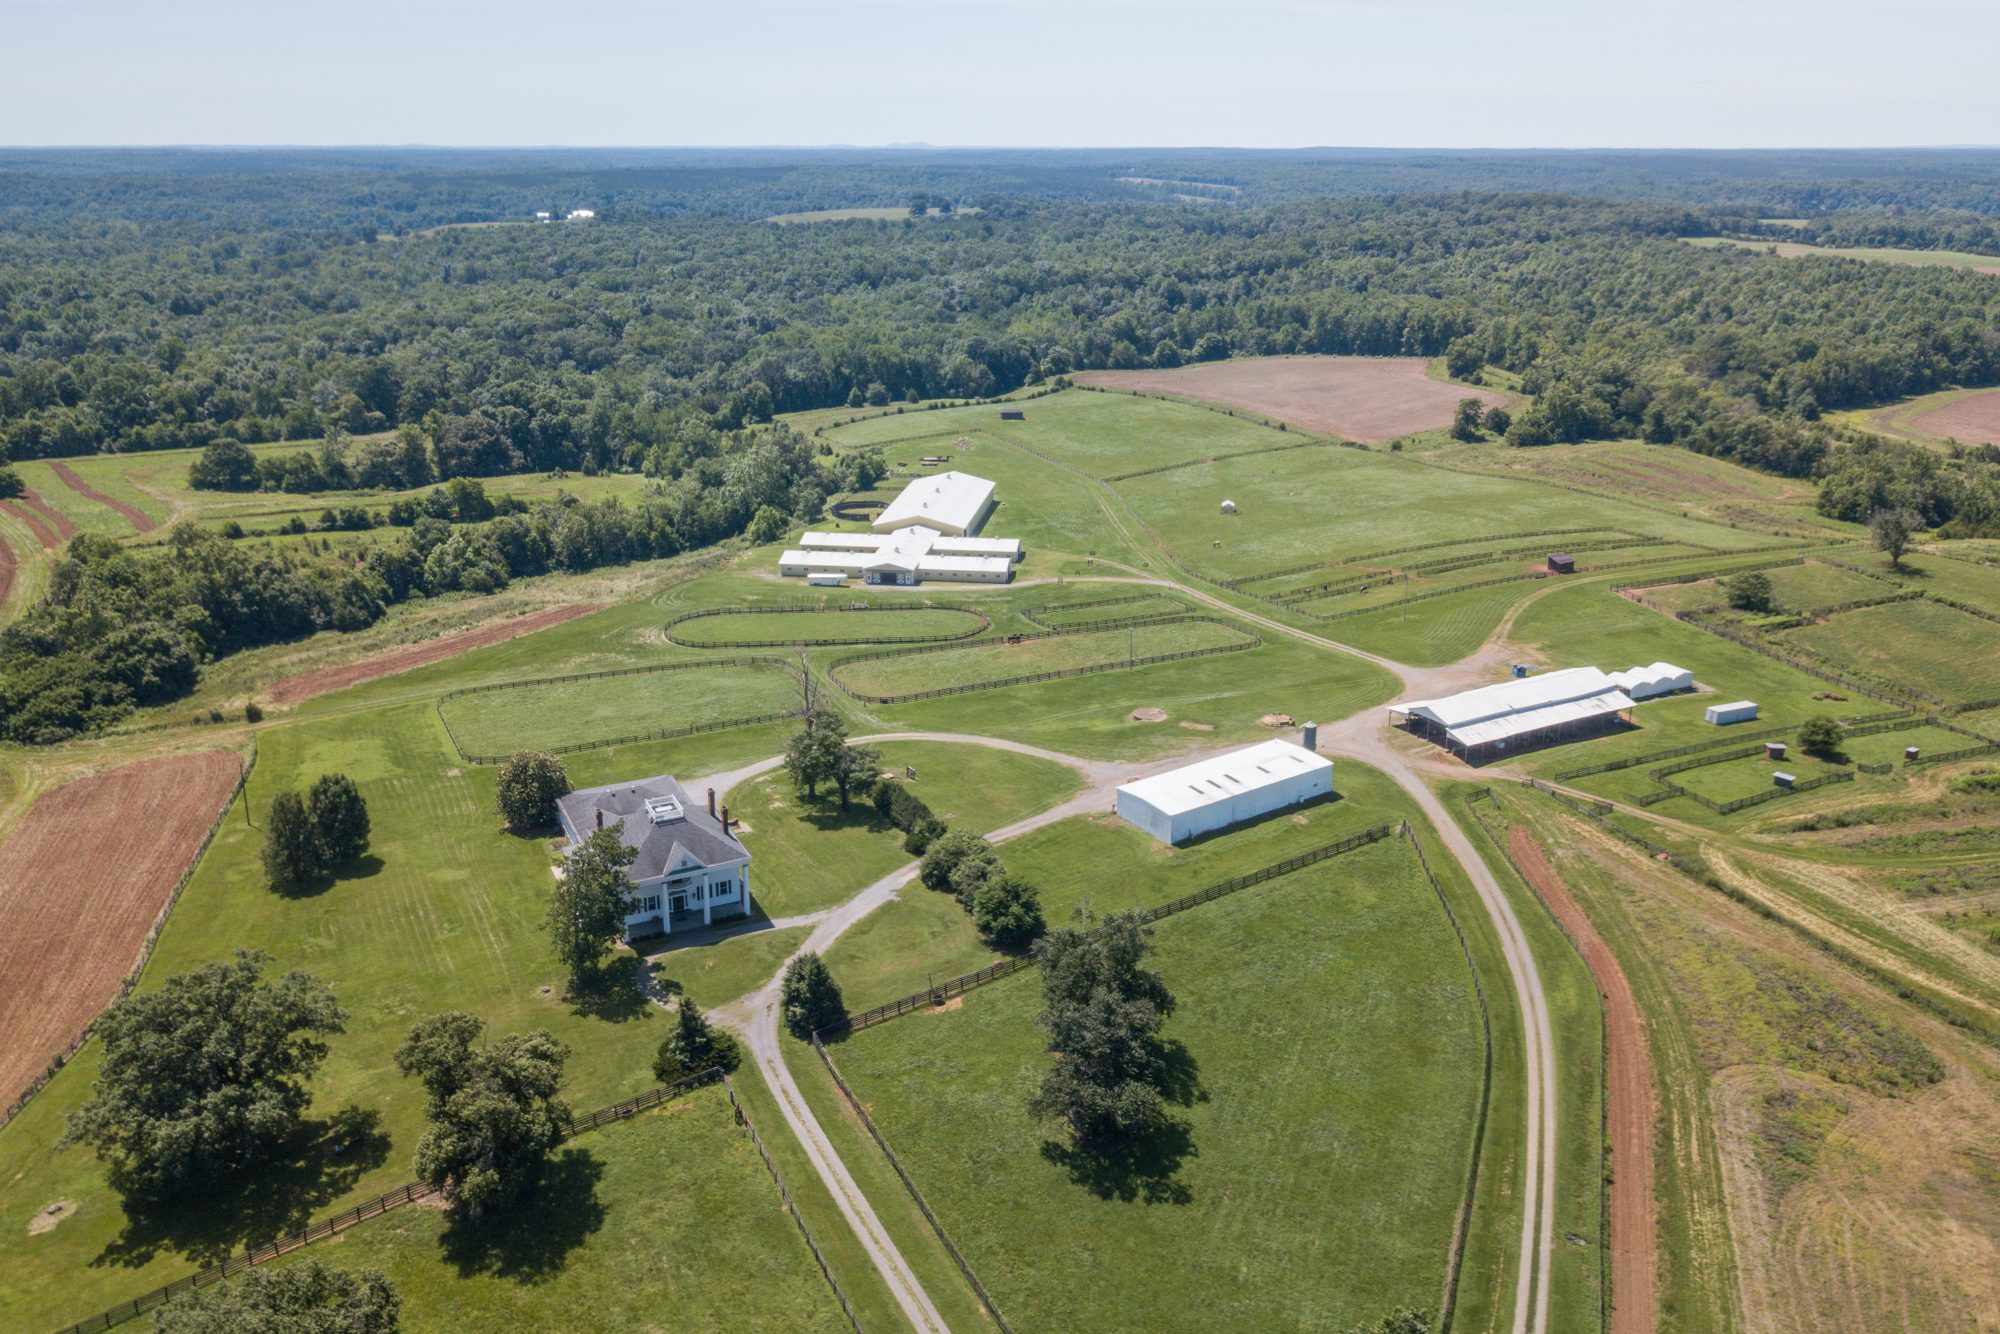 Greenfield Farm from Above